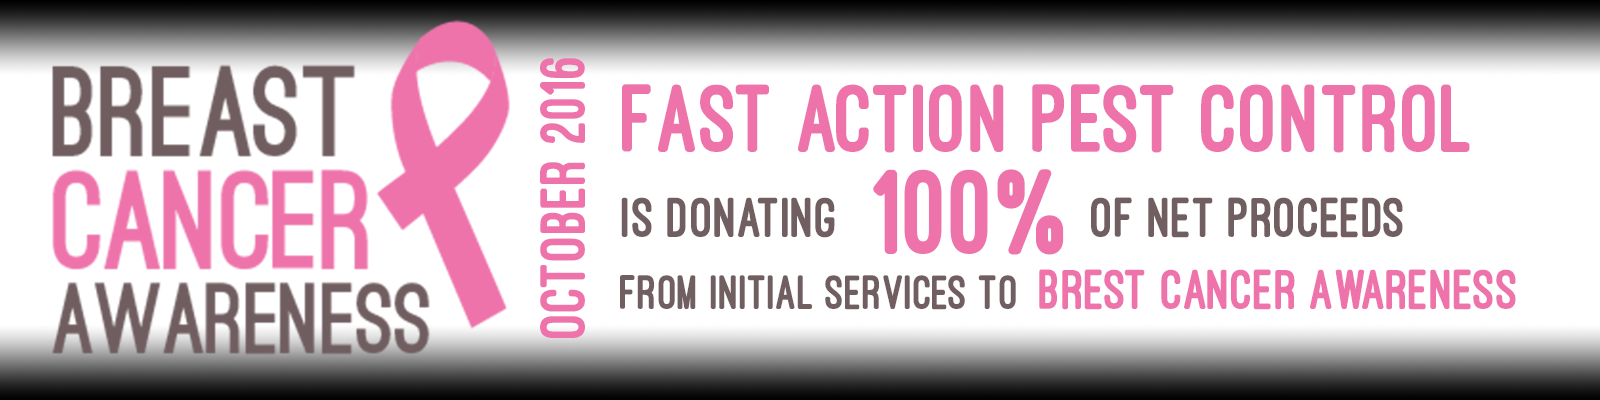 Breast Cancer 2016 Fast Action Pest Control Corporation